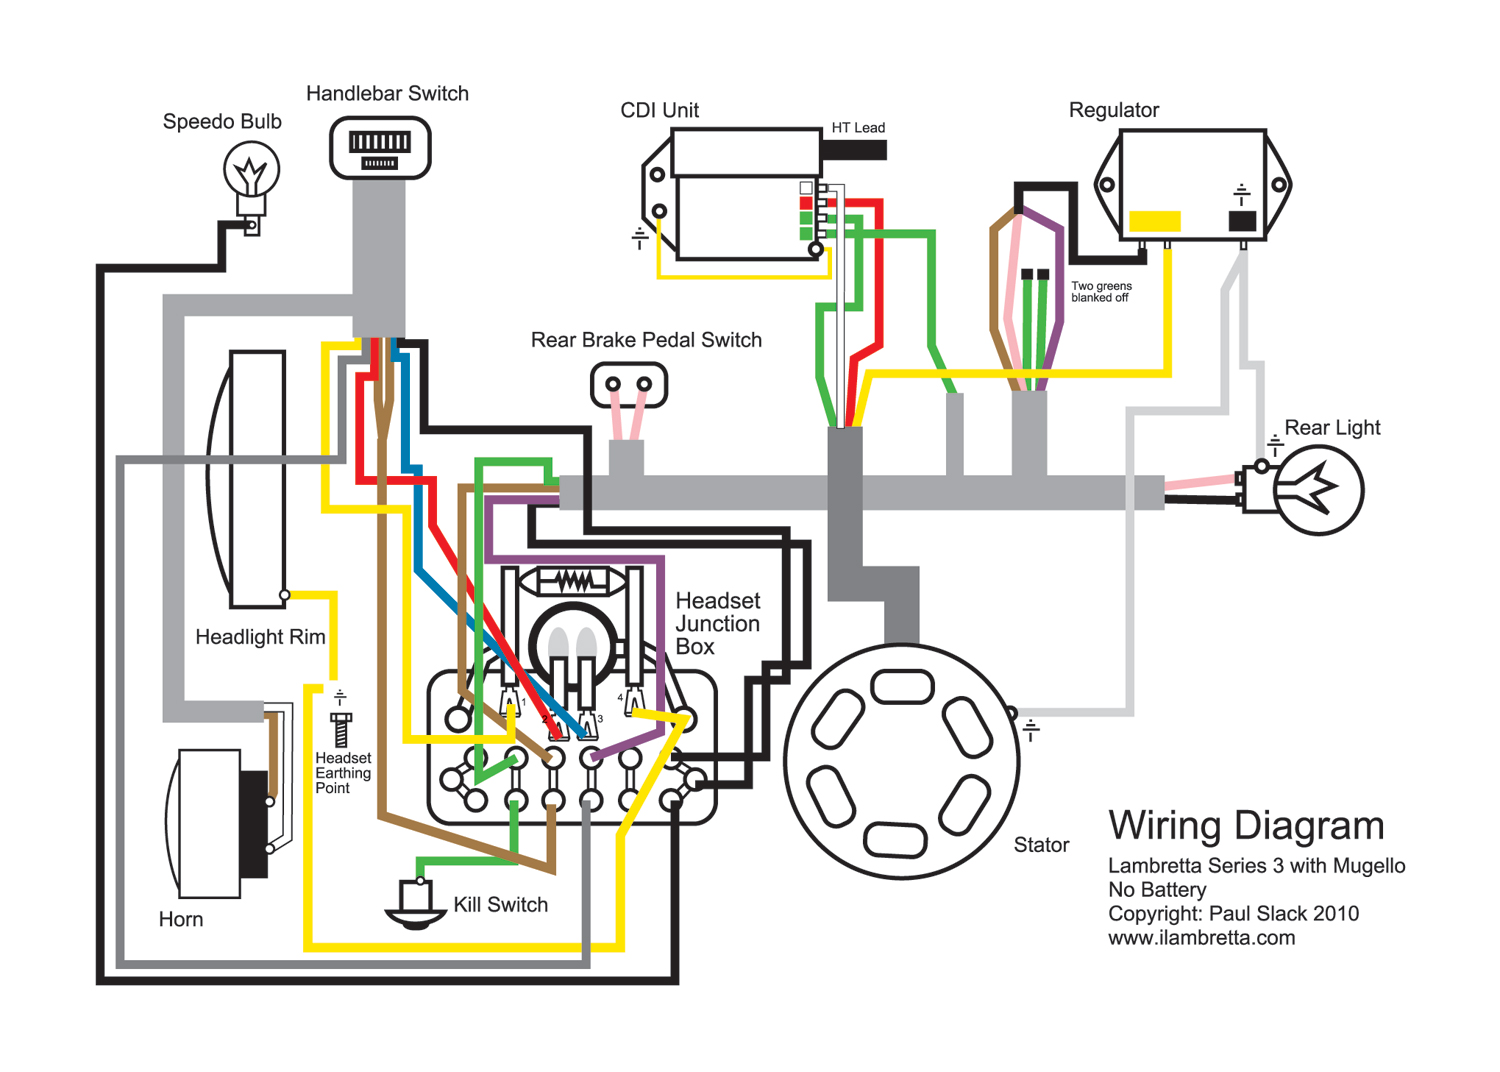 Li150 Wiring lifan 50cc wiring diagram pit bike wiring harness diagram \u2022 free 125Cc Chinese ATV Wiring Diagram at gsmx.co